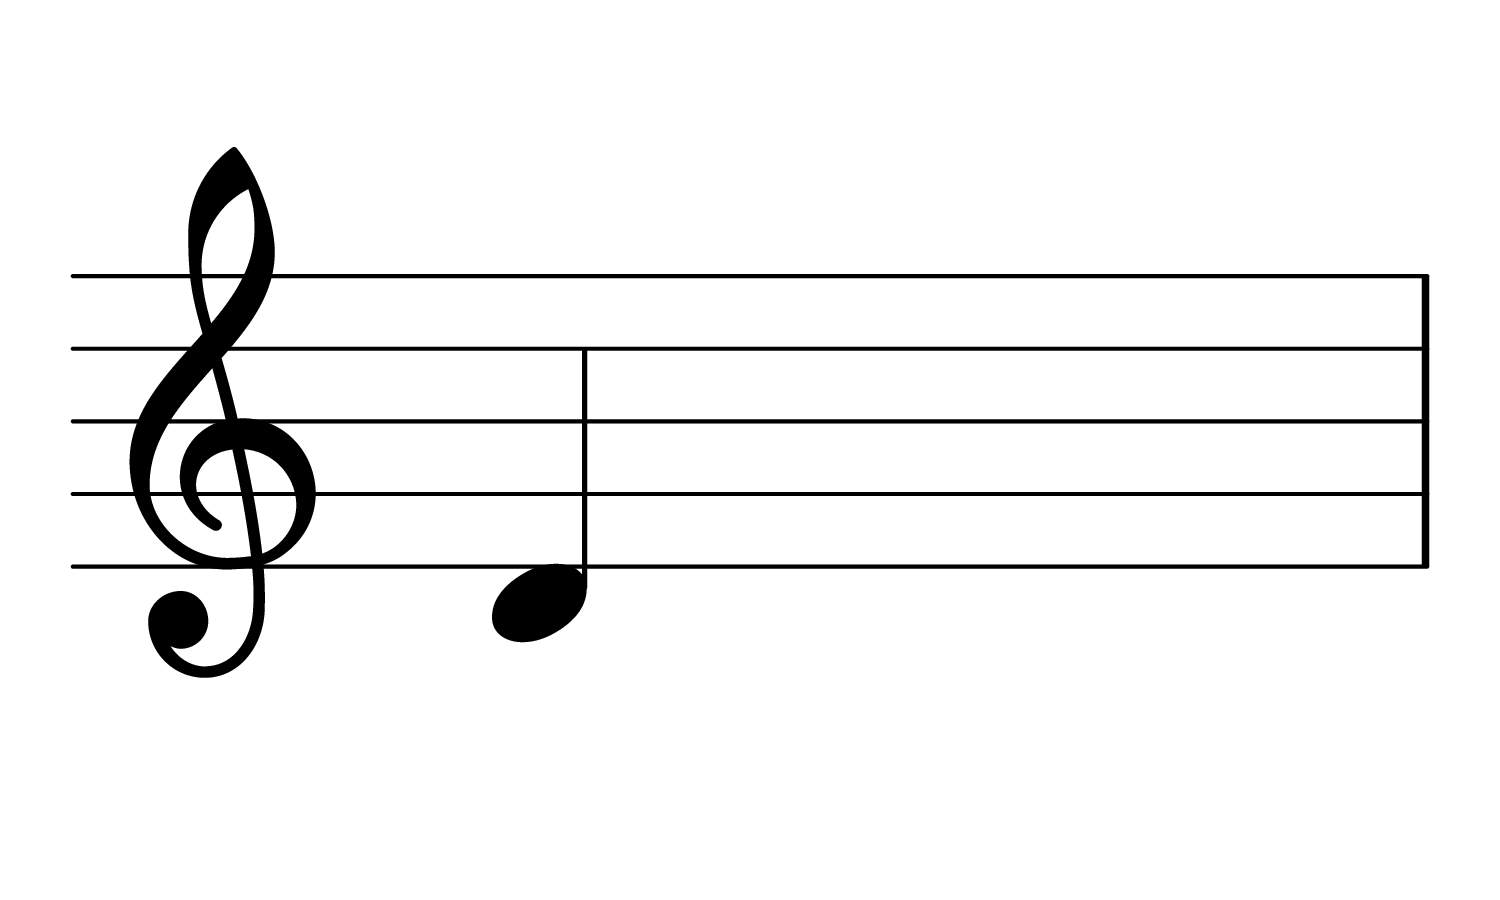 The note D3 on the treble clef.